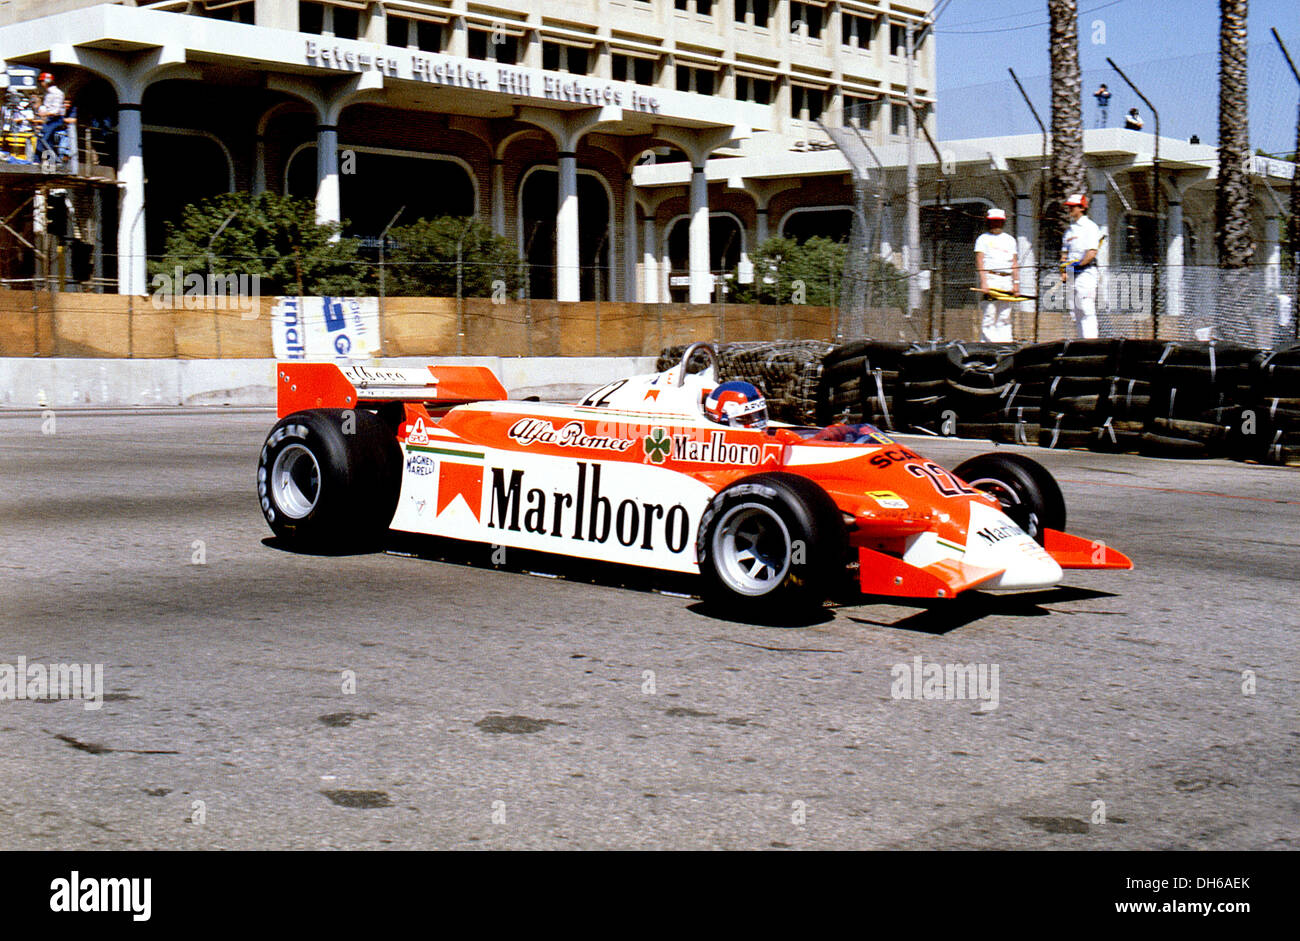 Patrick Depailler in Alfa Romeo 179C retired from the US GP (West), Long Beach, USA 30 March 1980.